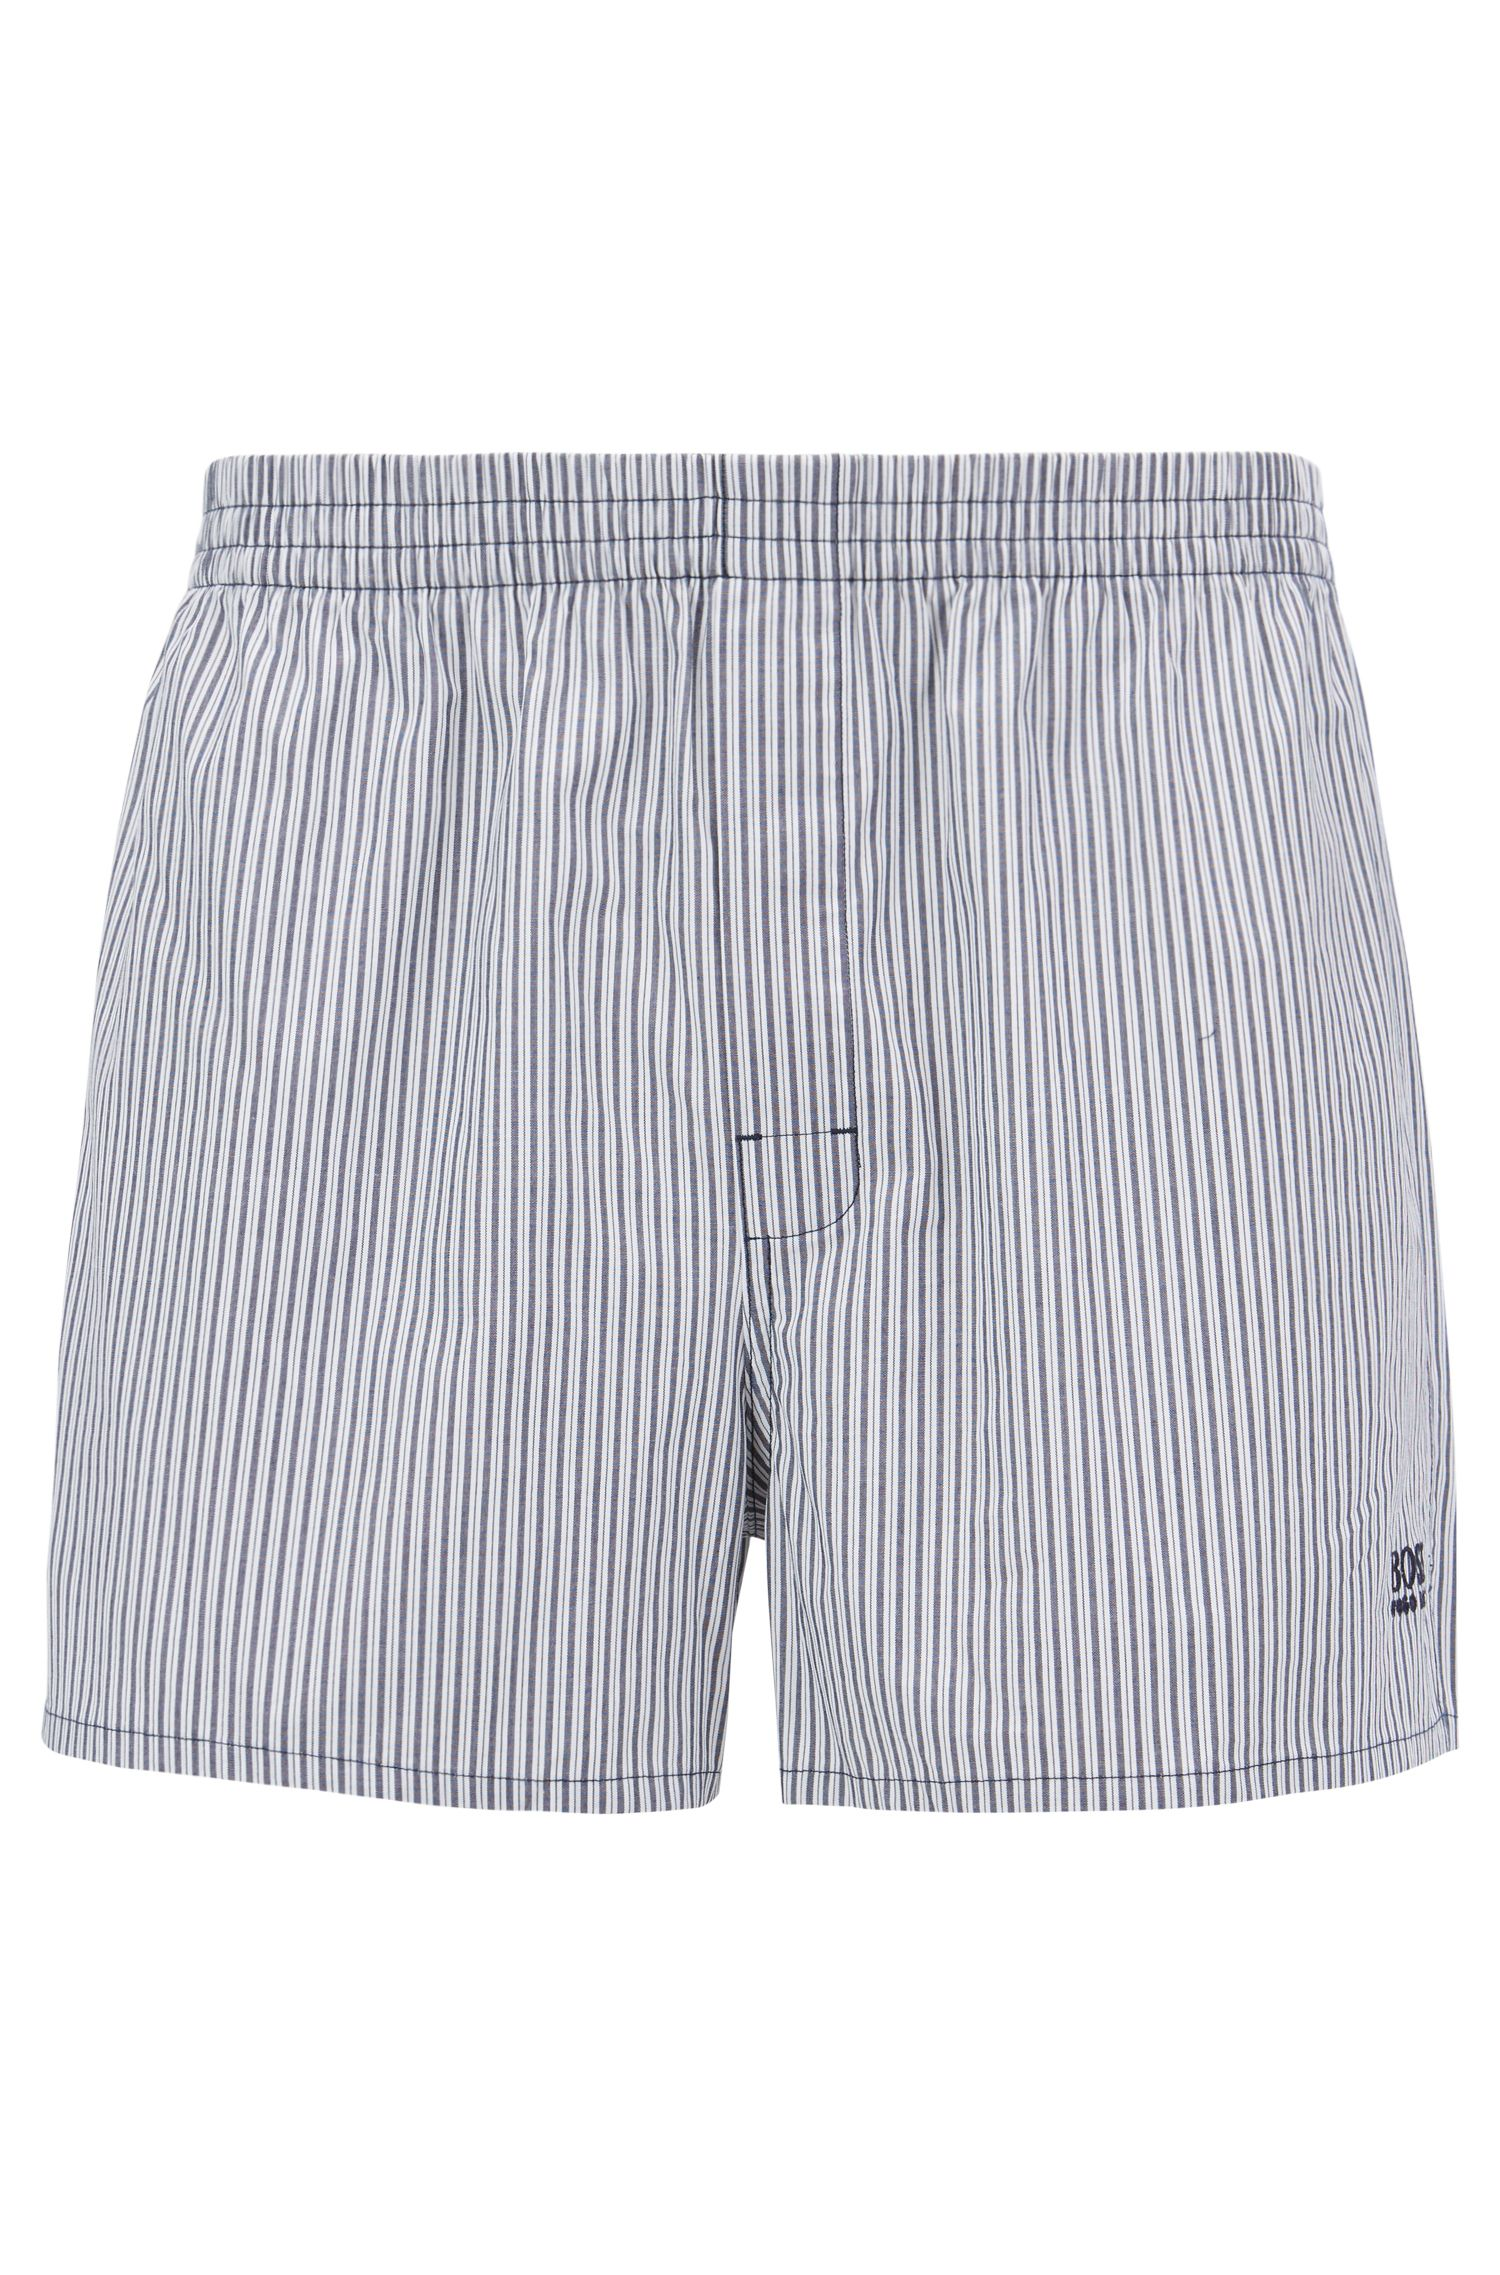 Two-pack of pyjama shorts in pure cotton poplin